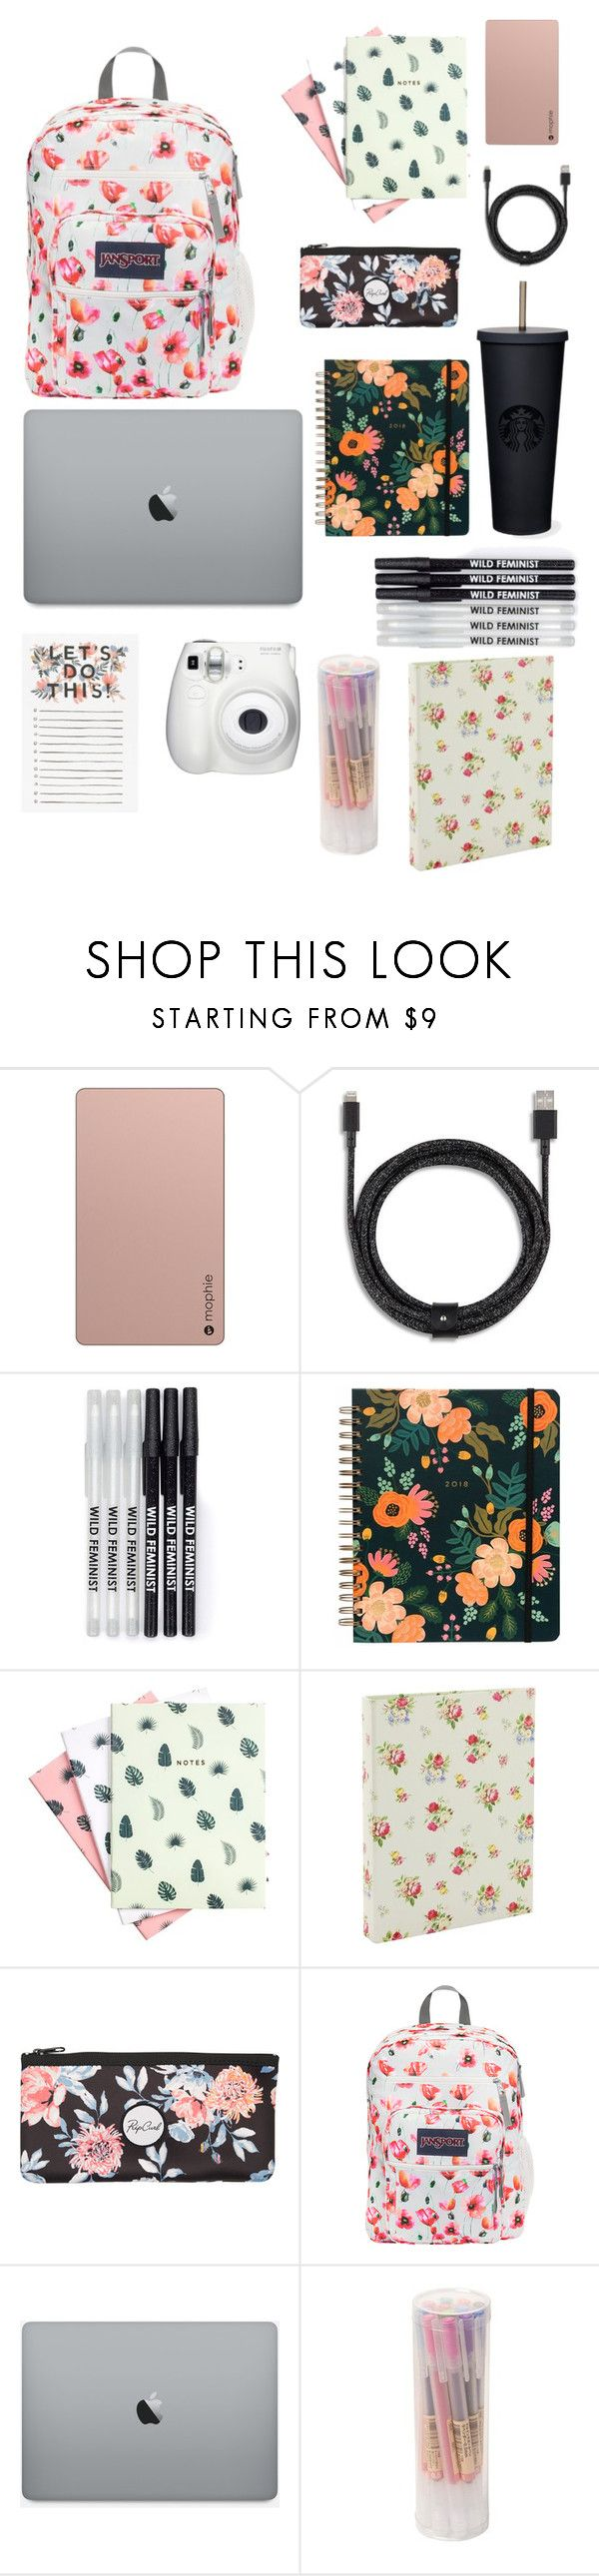 """""""◇My School Bag◇"""" by hbananaanna ❤ liked on Polyvore featuring Mophie, Native Union, Hadron Epoch, Go Stationery, Rip Curl, JanSport and Fujifilm"""